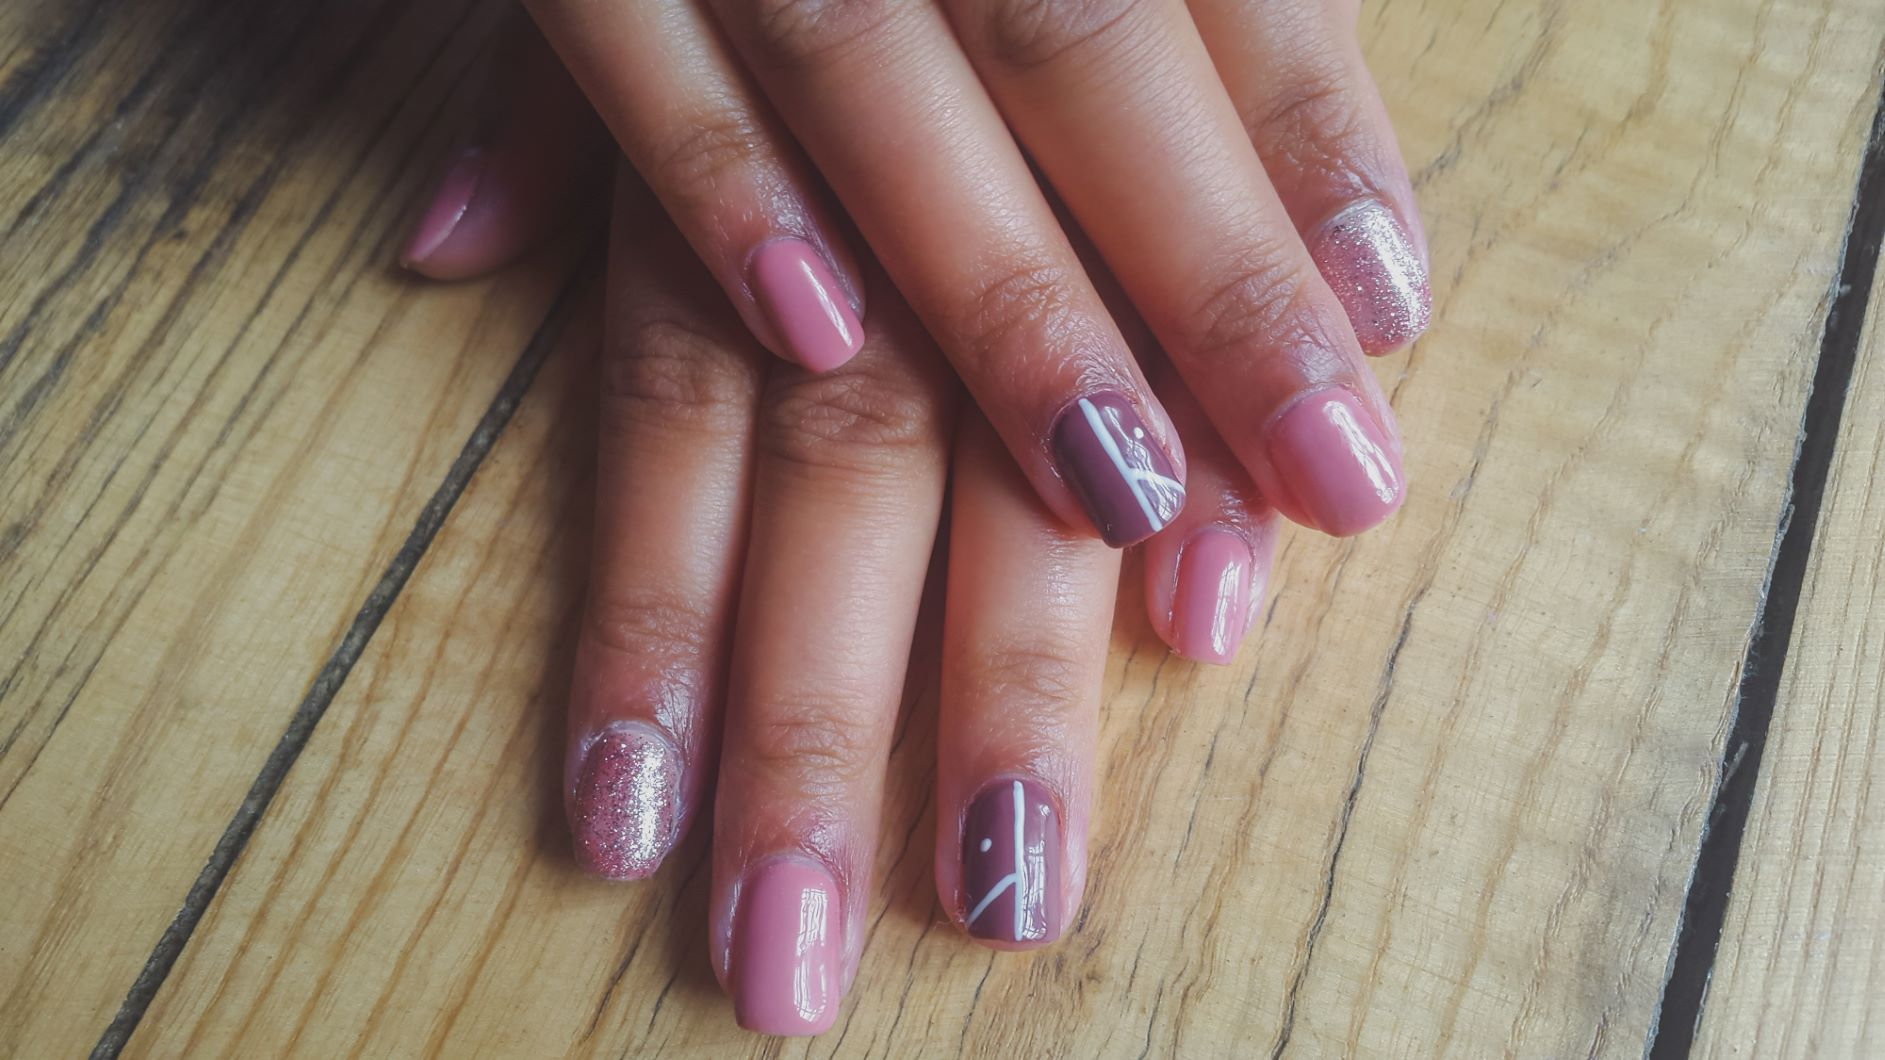 nails melan skincare durbanville